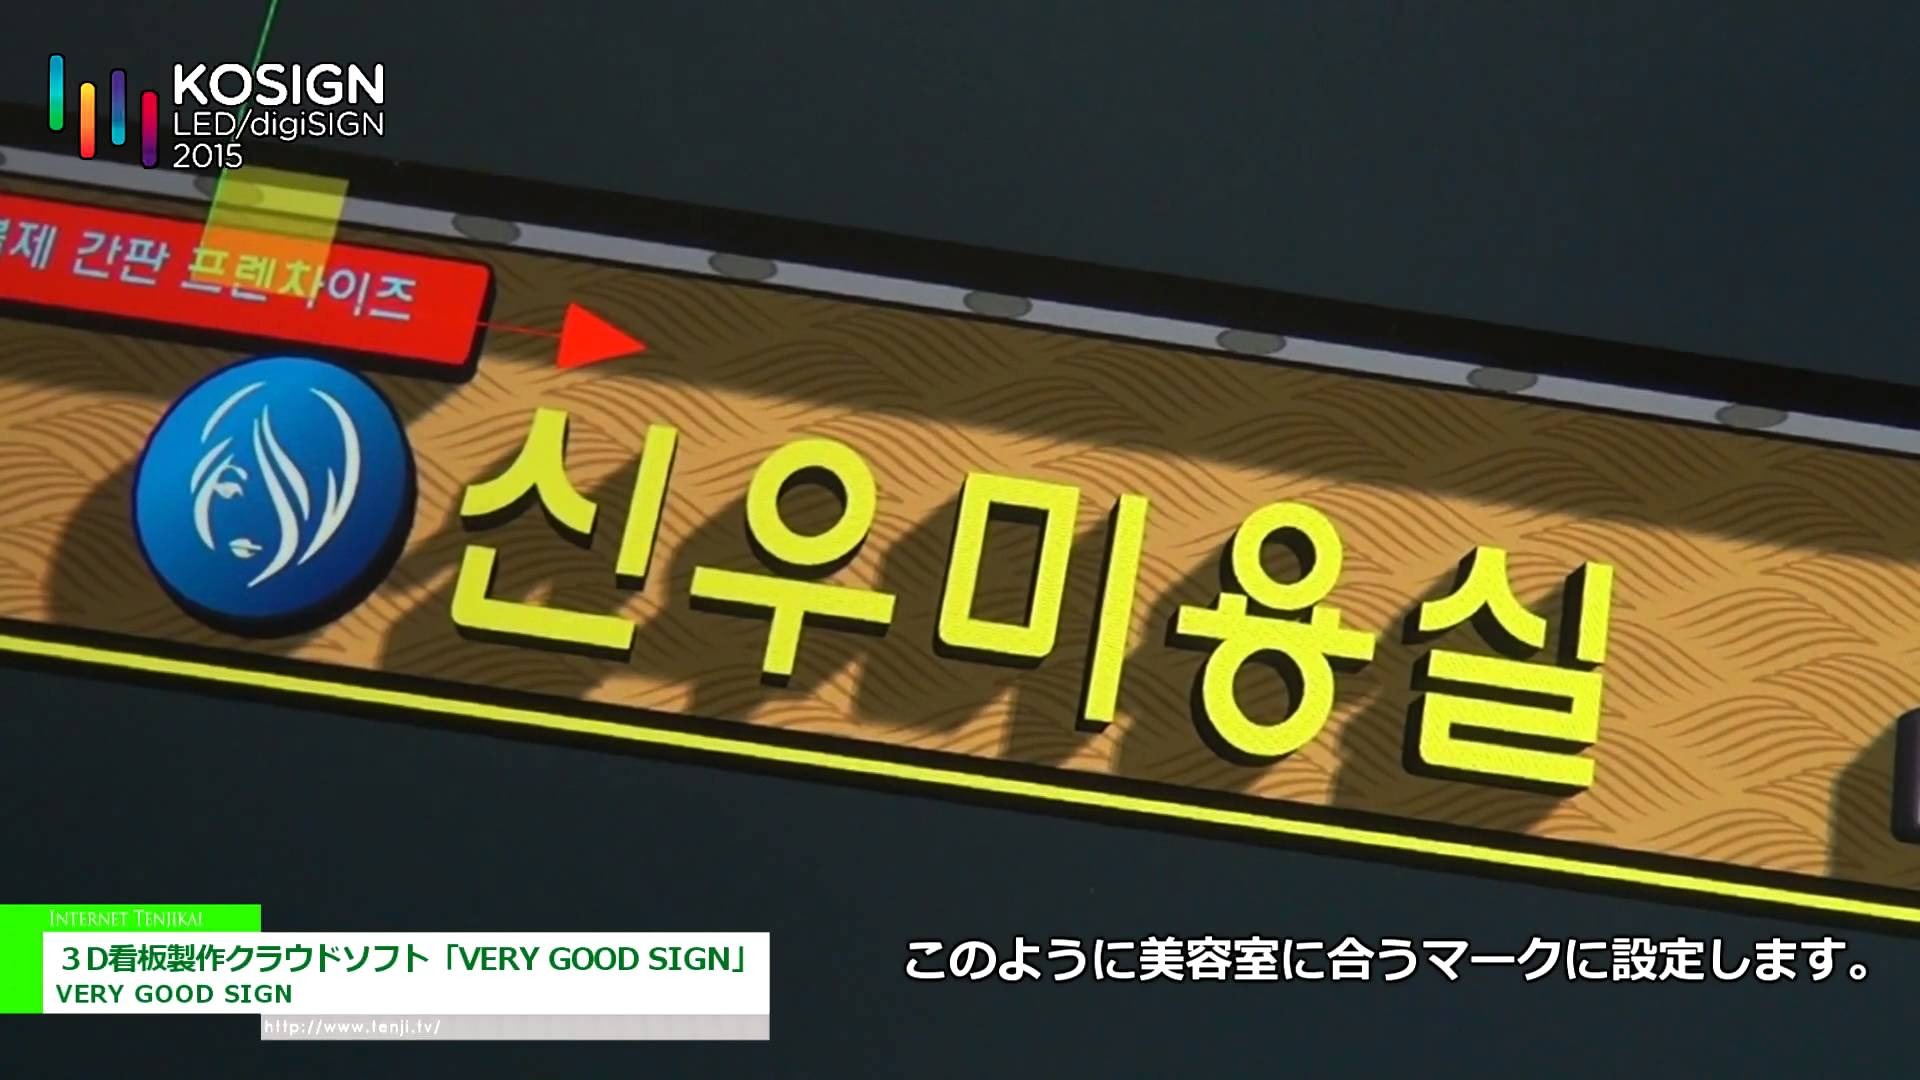 [KOSIGN 2015] 3D看板製作クラウドソフト「VERY GOOD SIGN」 - VERY GOOD SIGN